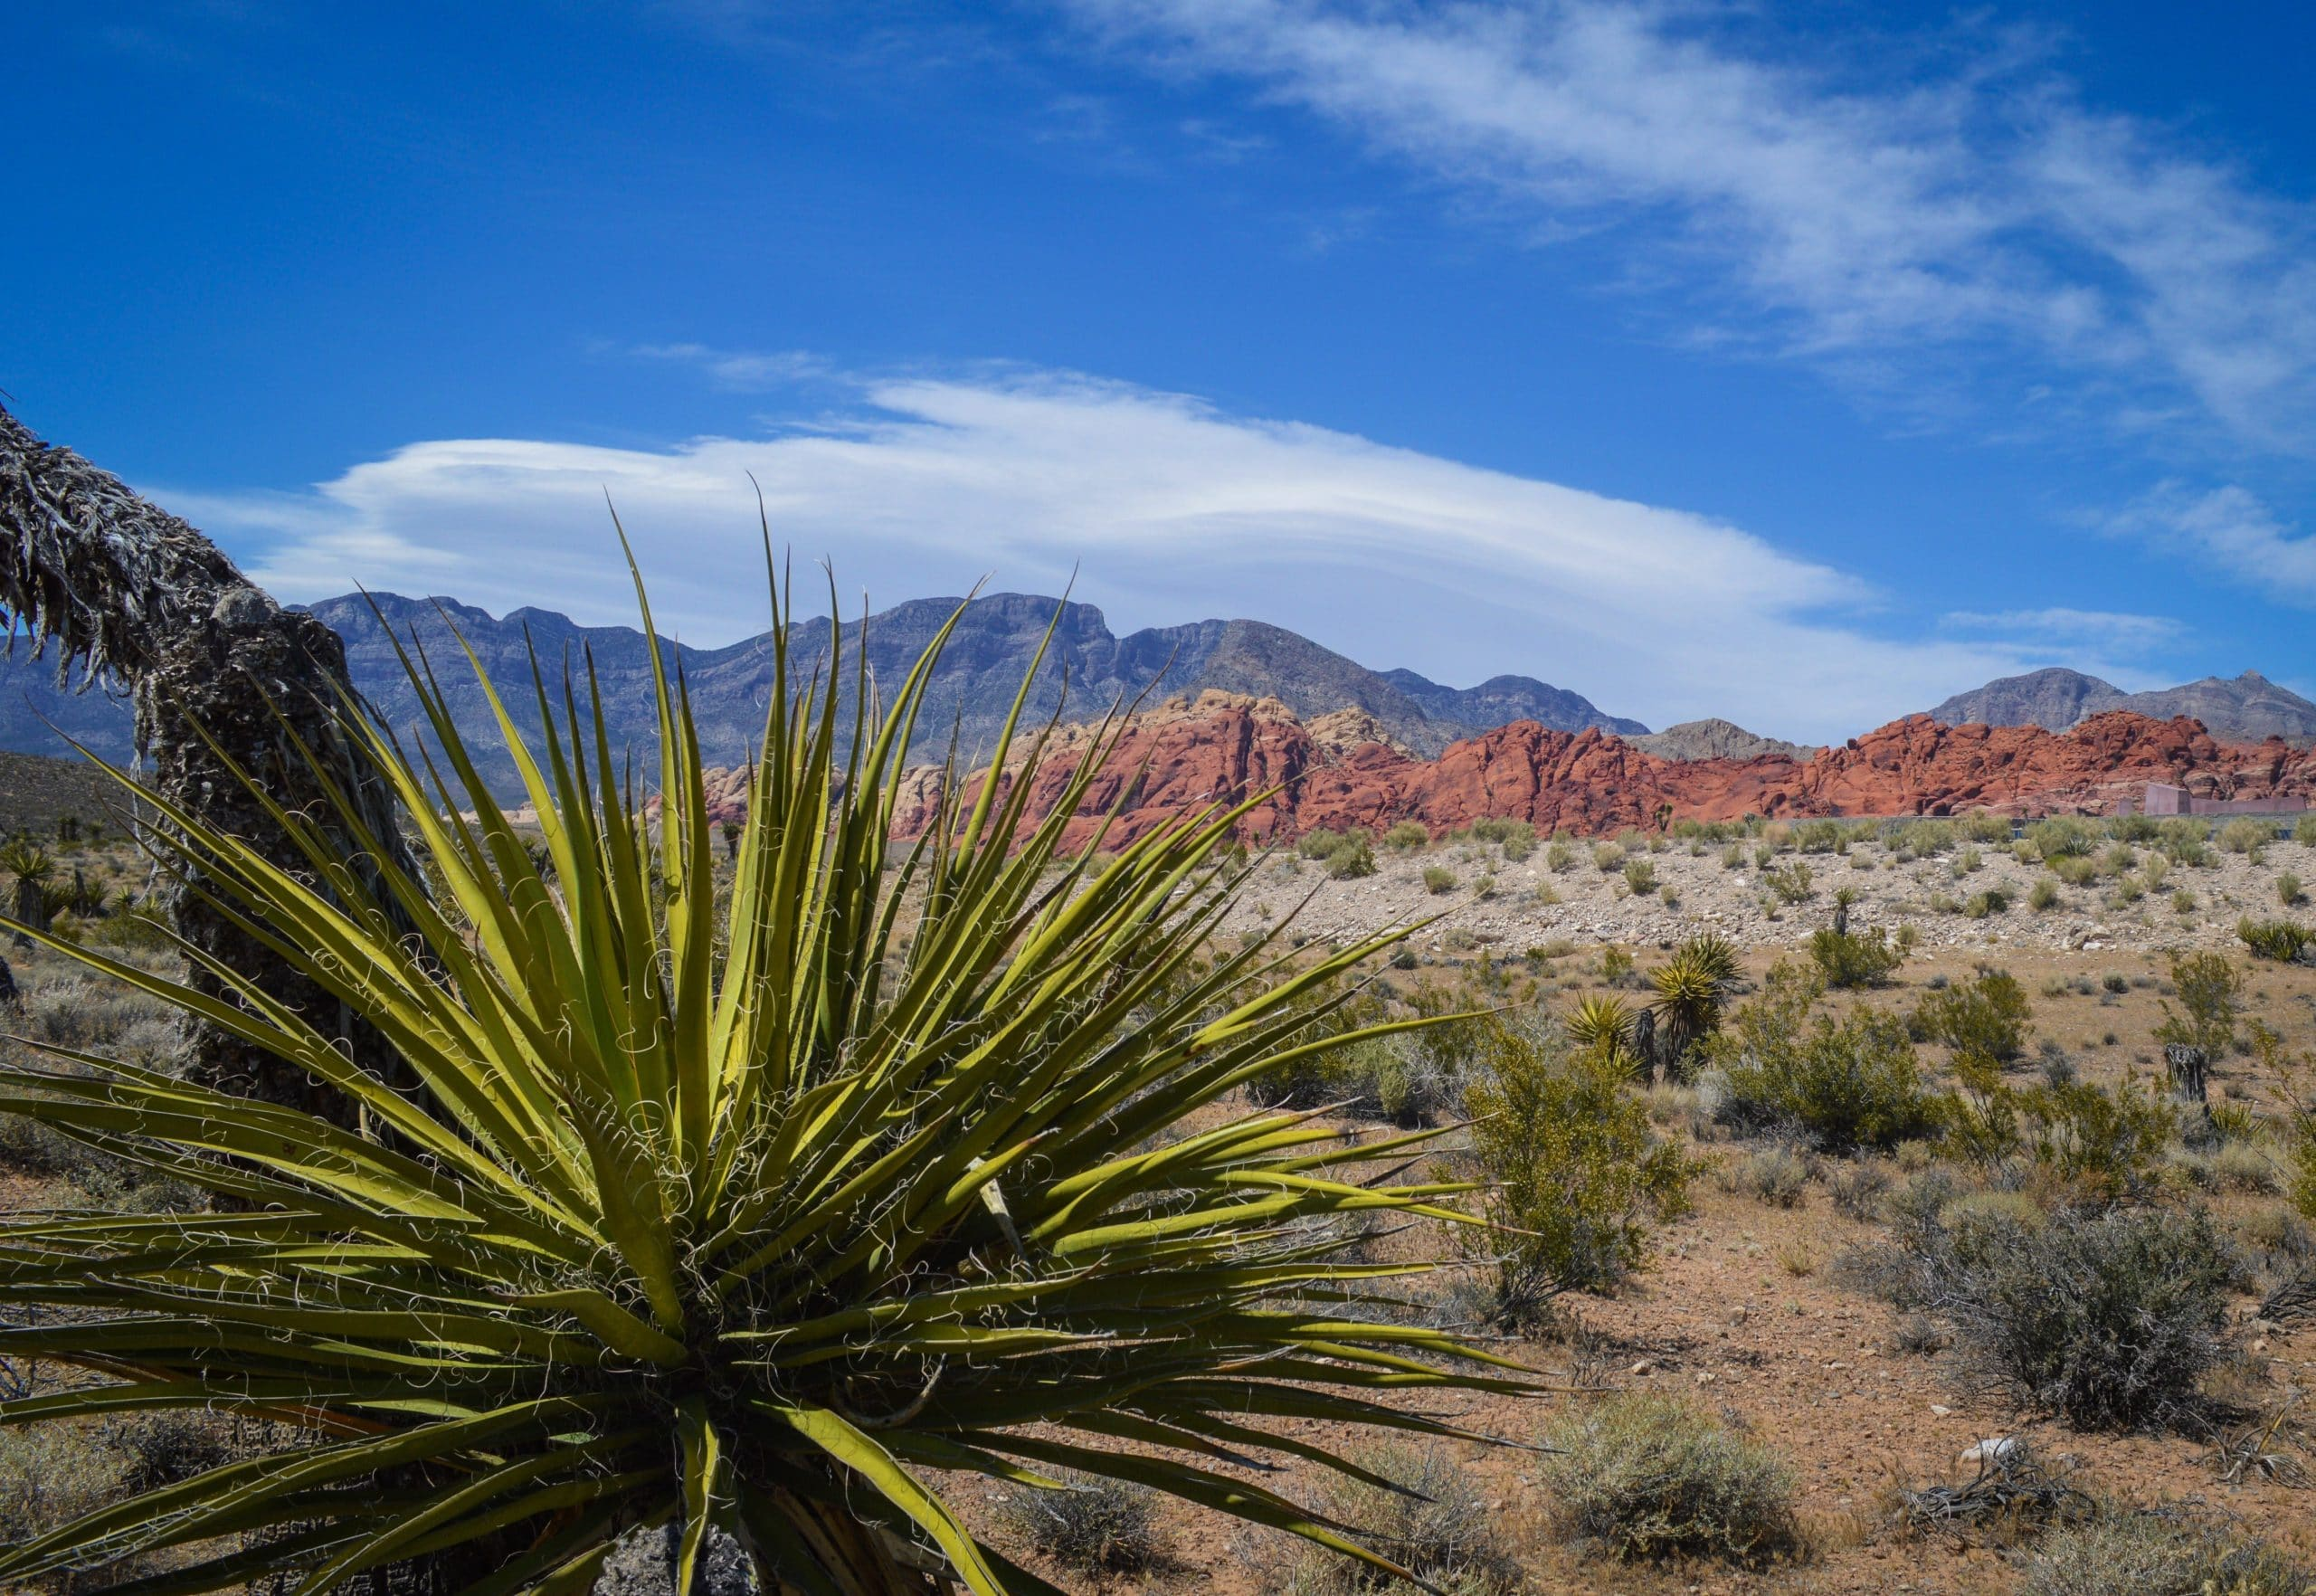 red rock canyon just outside of Las Vegas has a scenic road so you can sightsee from your car